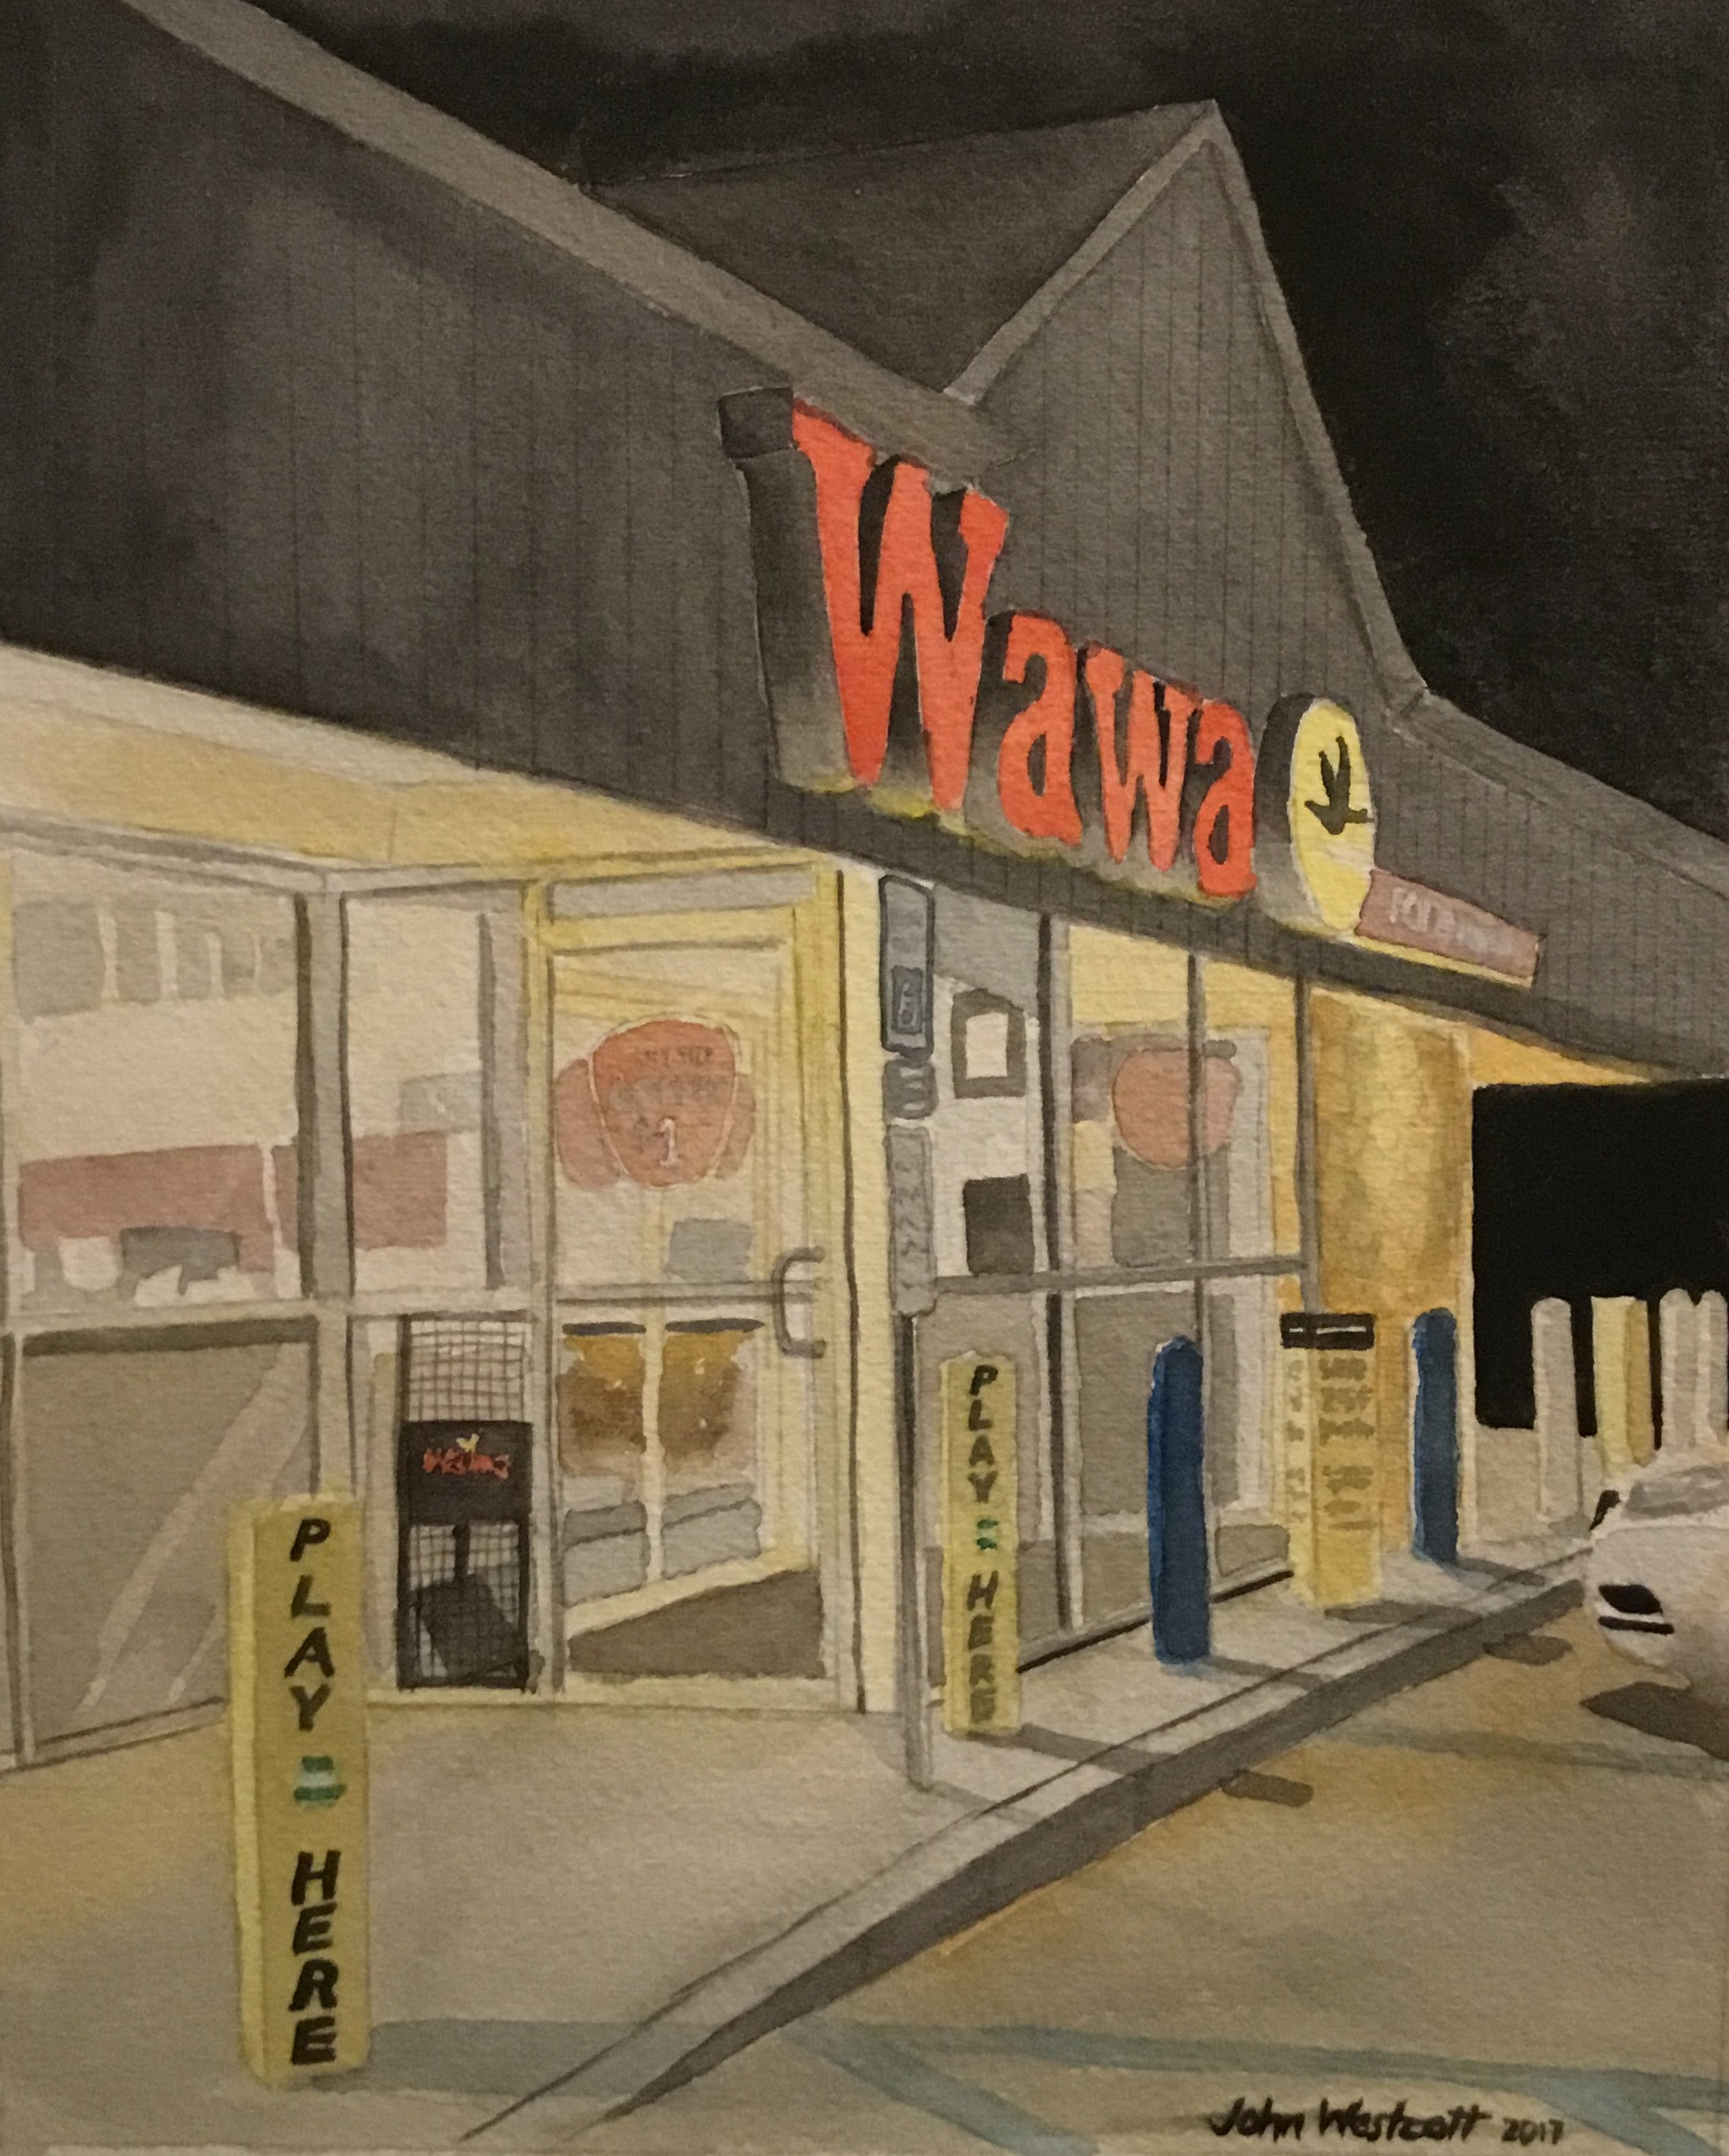 Spring House Wawa at 11 PM